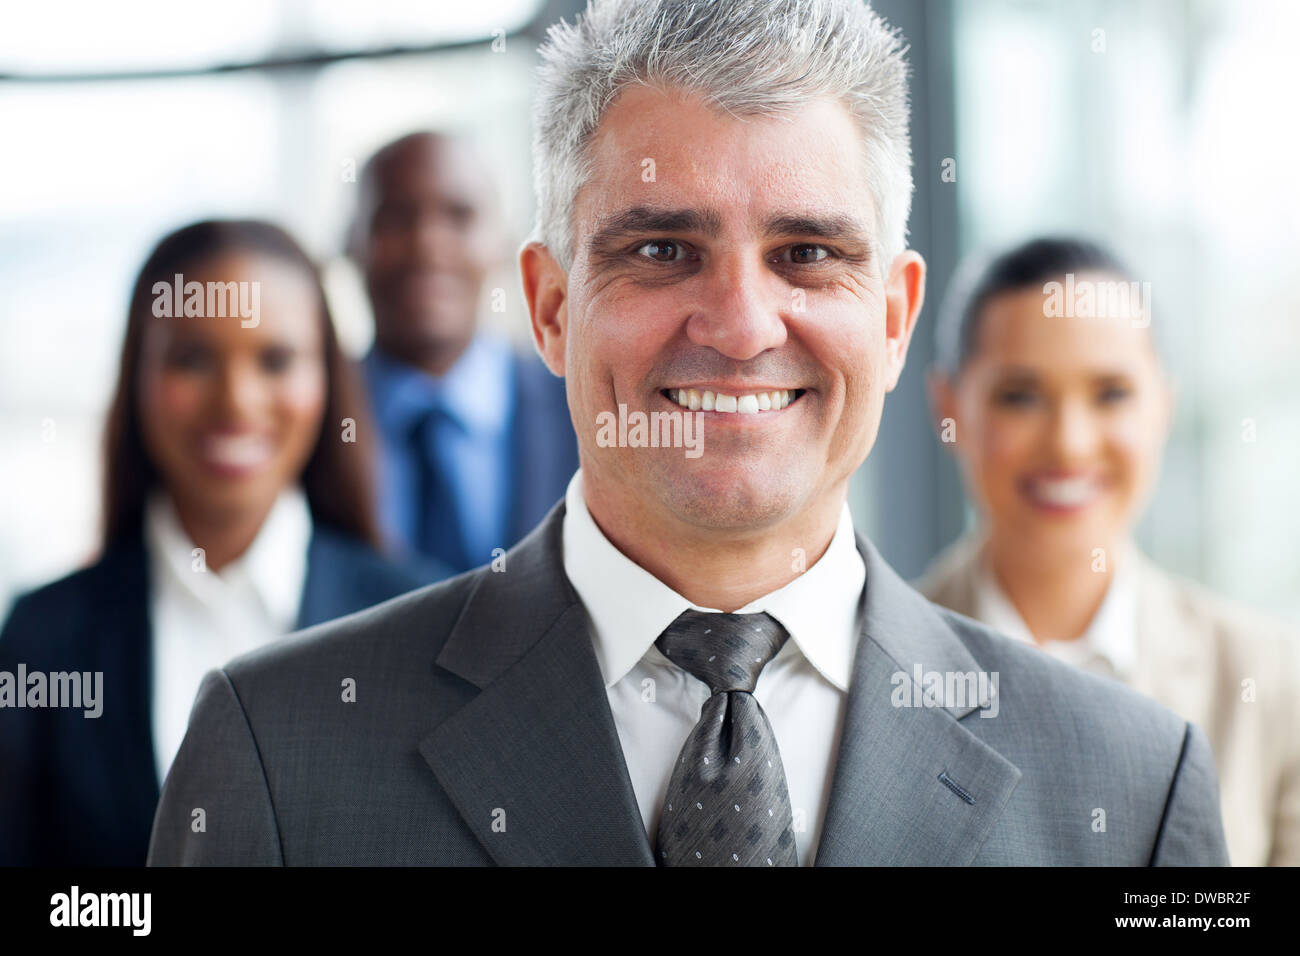 handsome senior businessman standing with co-workers on background - Stock Image